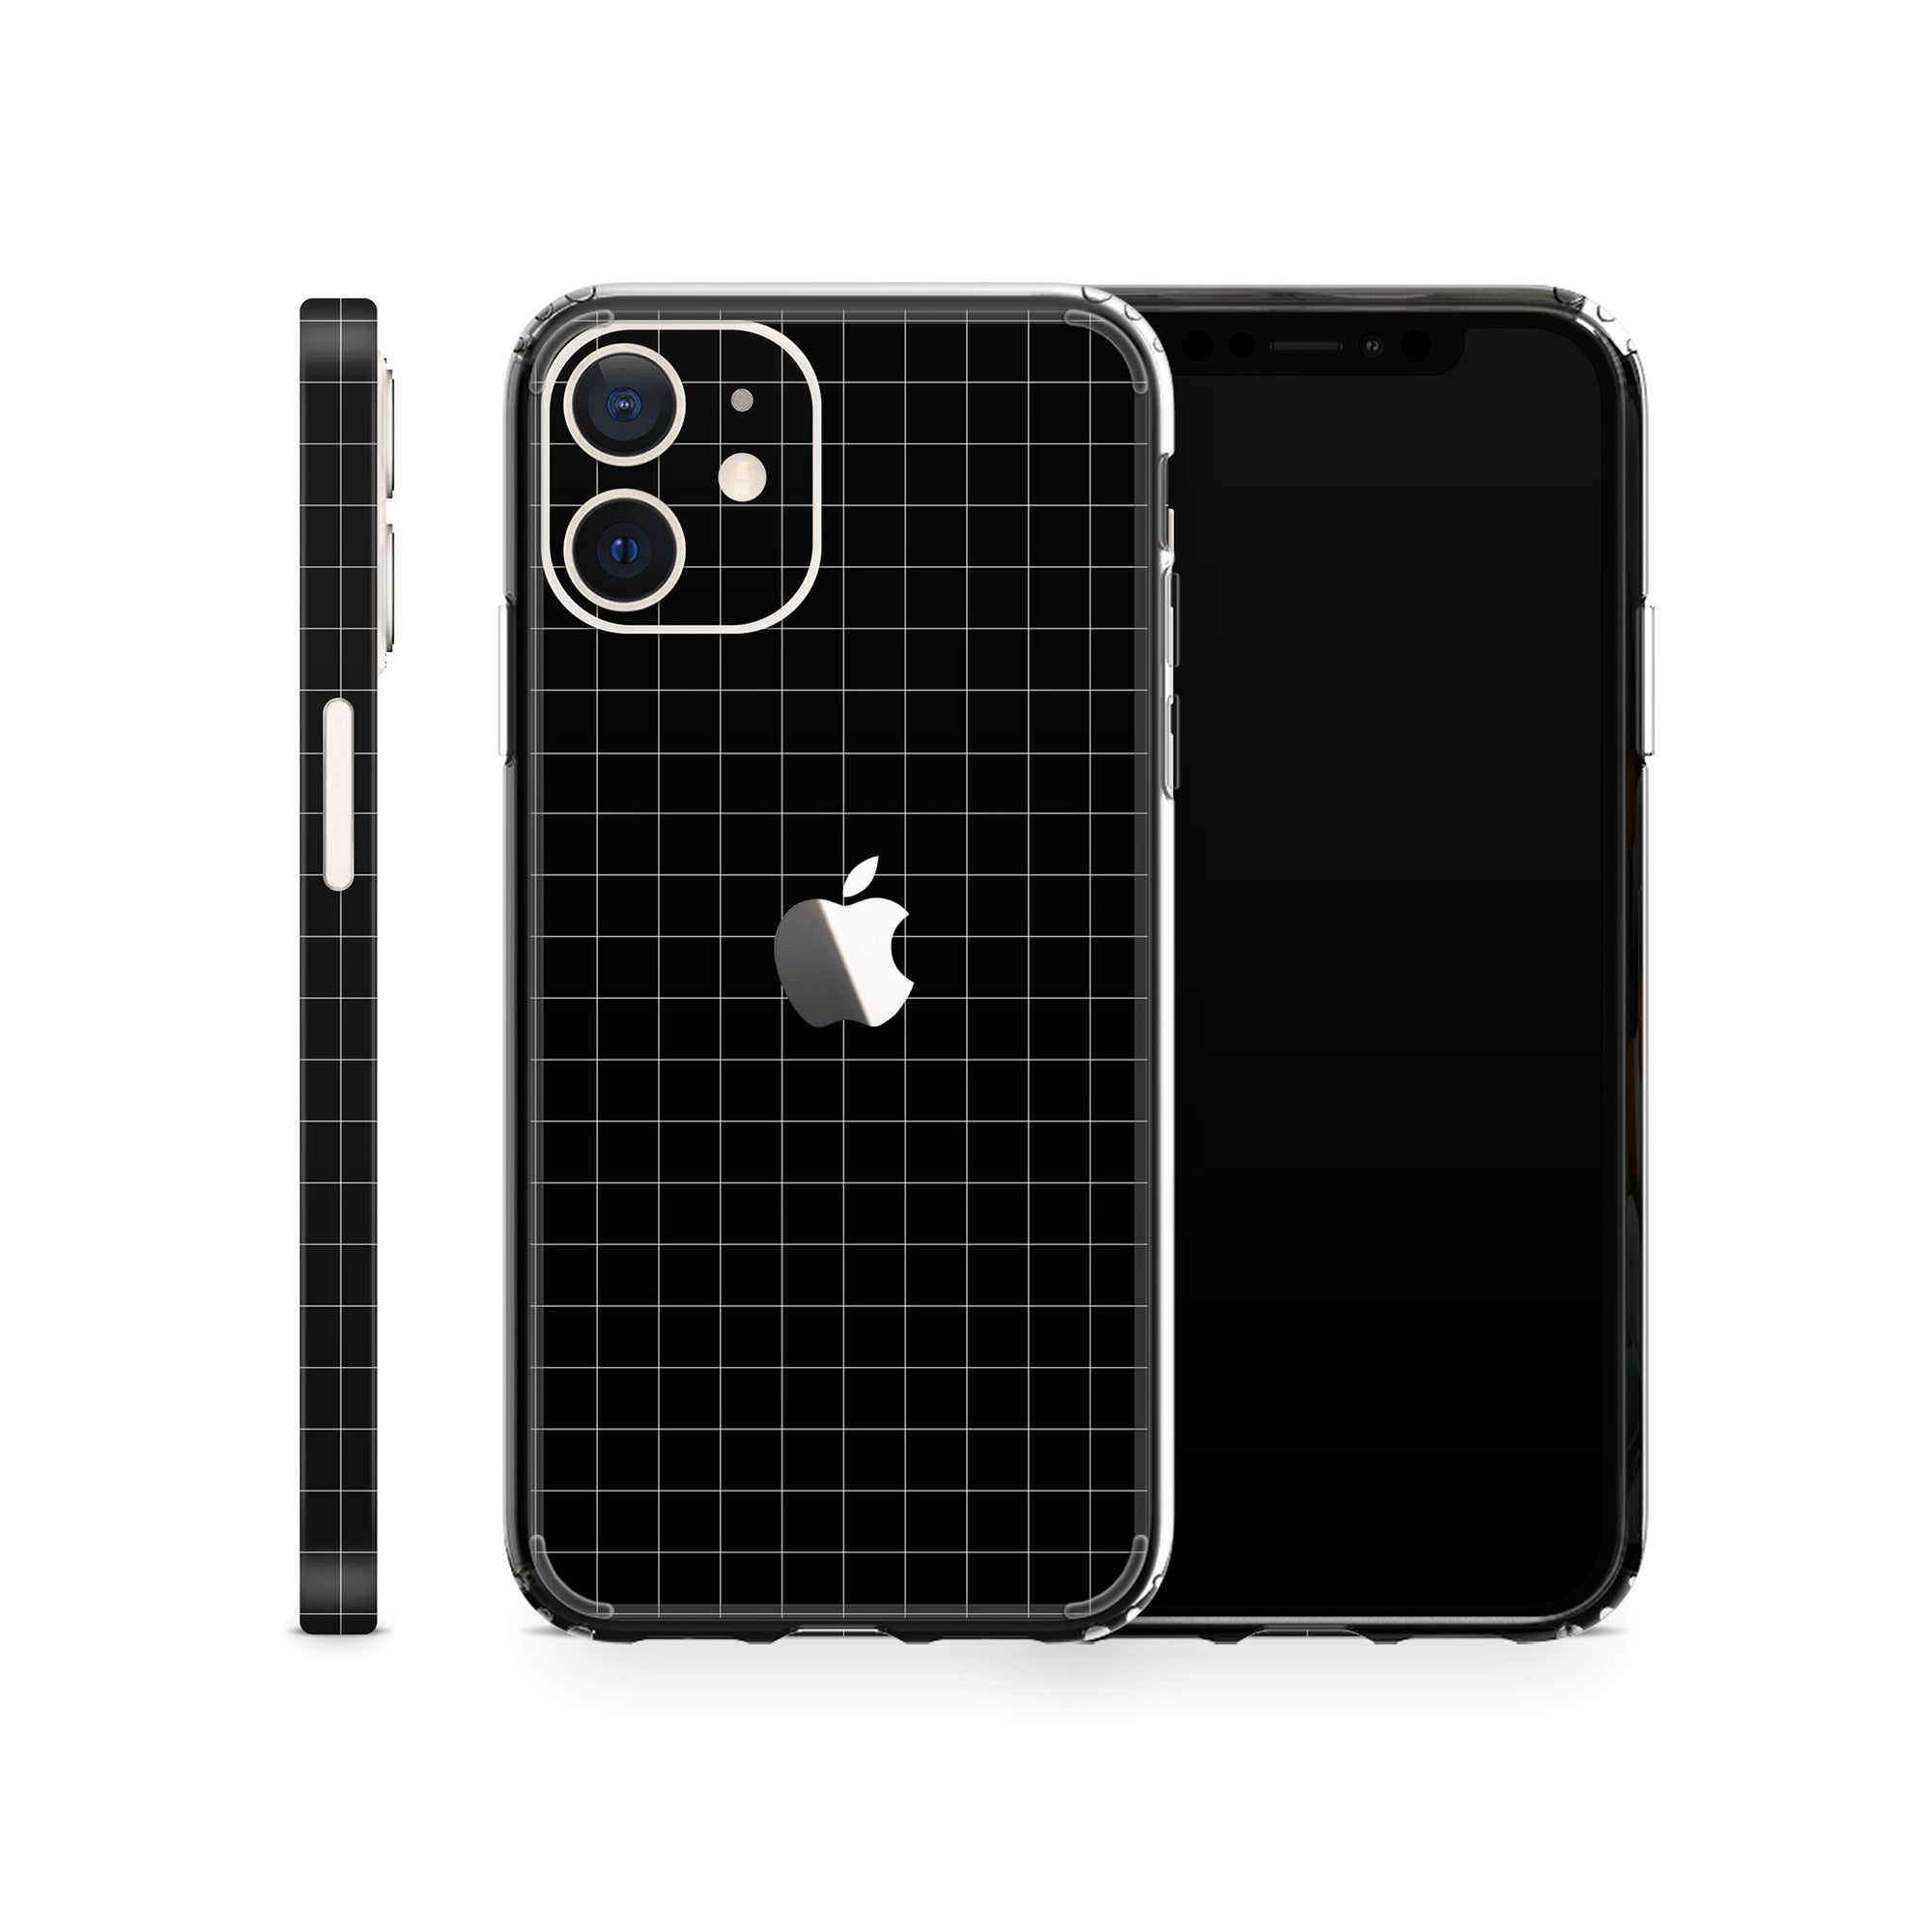 iPhone Case 12 Black Grid